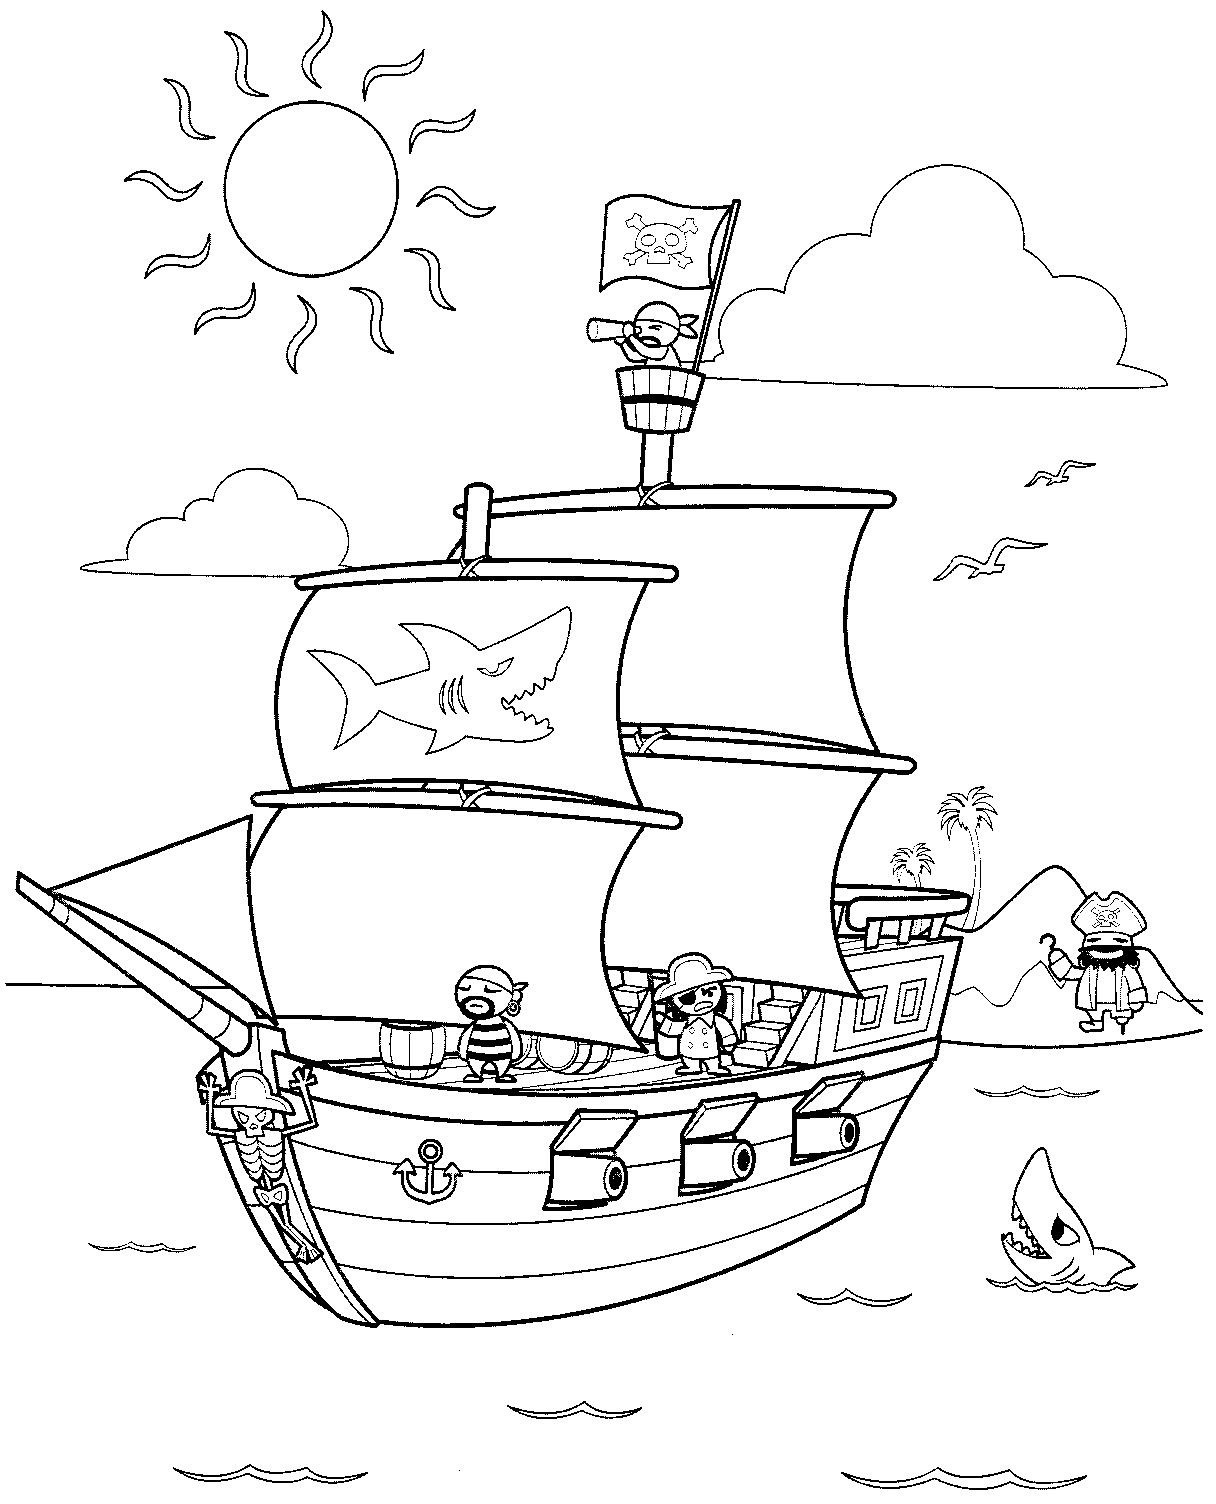 irate coloring pages - photo#17